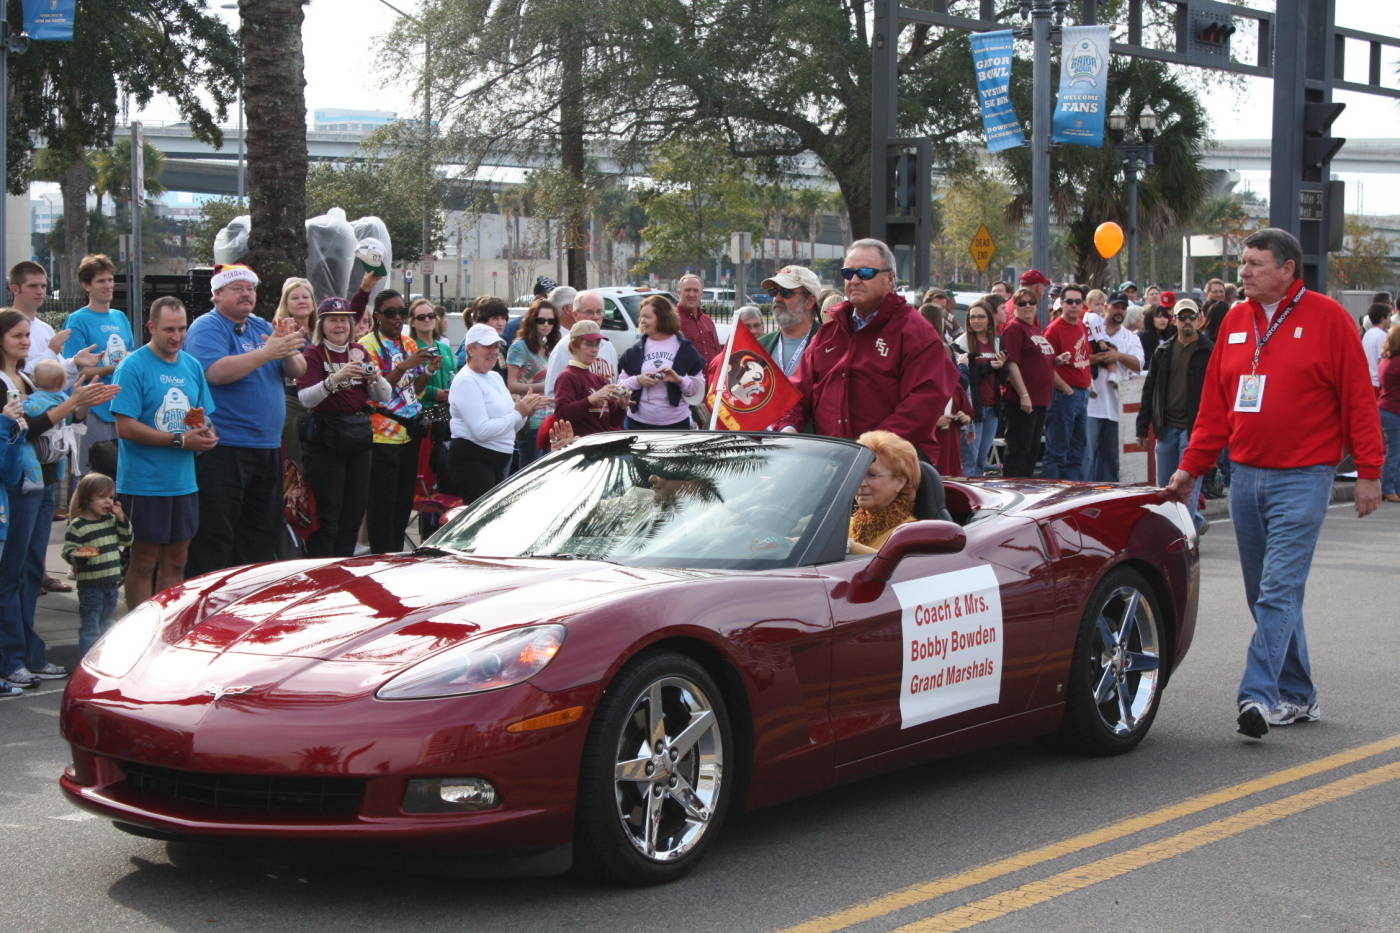 Winn-Dixie Hometown Gator Bowl Parade#$%^Florida State head coach Bobby Bowden and wife Ann Bowden served as the Grand Marshals of the parade.